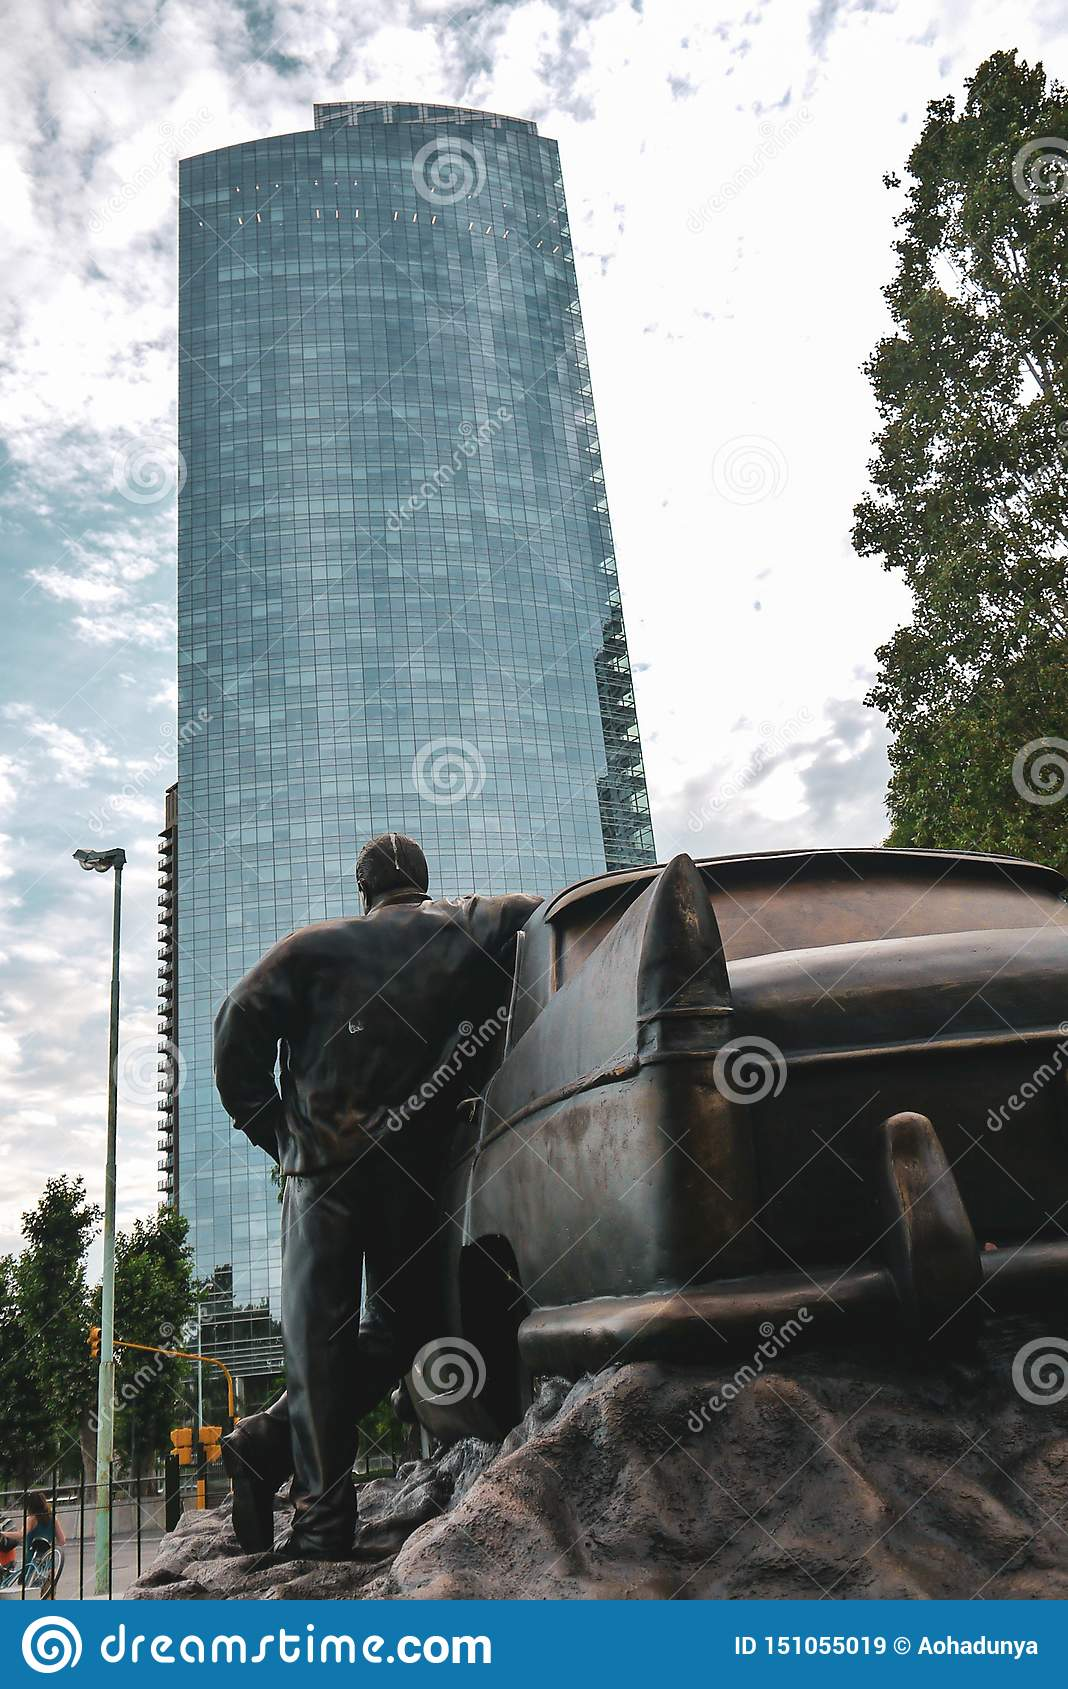 Taximonument i Buenos Aires